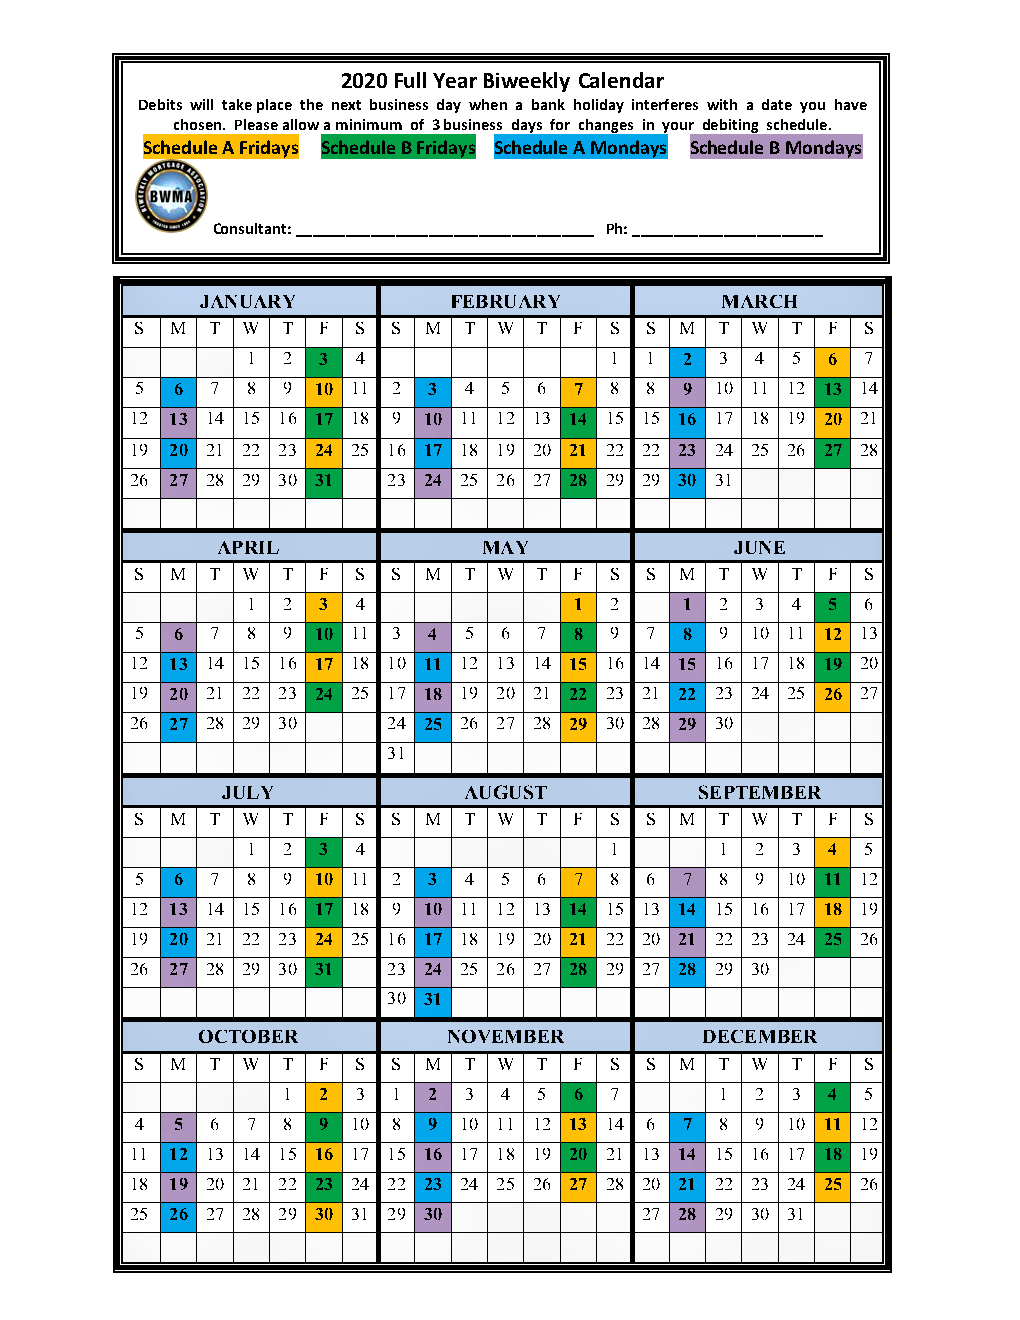 Biweekly Calendars - Bwma Member's Client Support